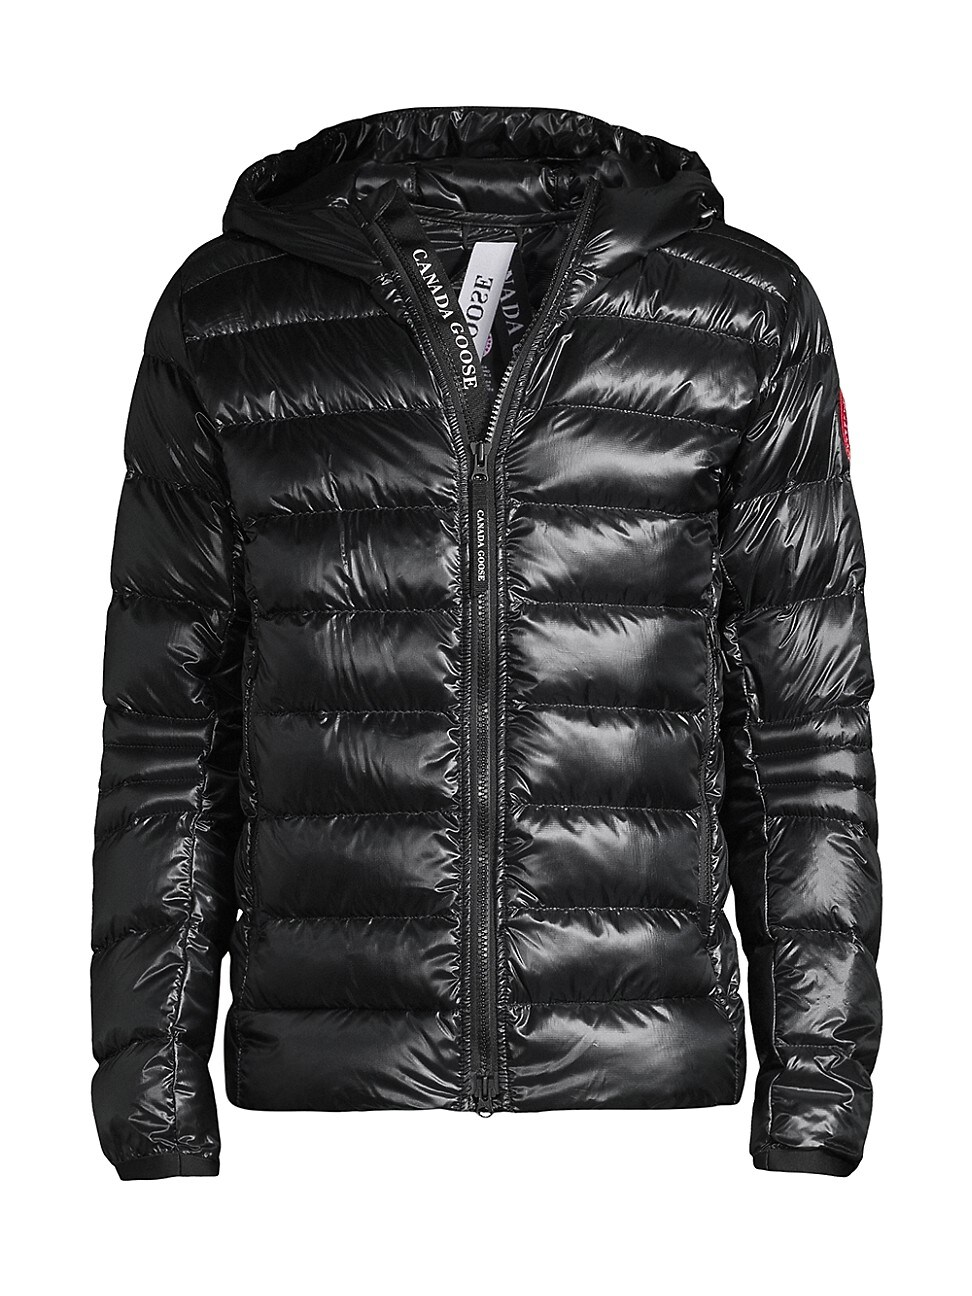 Canada Goose MEN'S CROFTON HOODED PUFFER JACKET